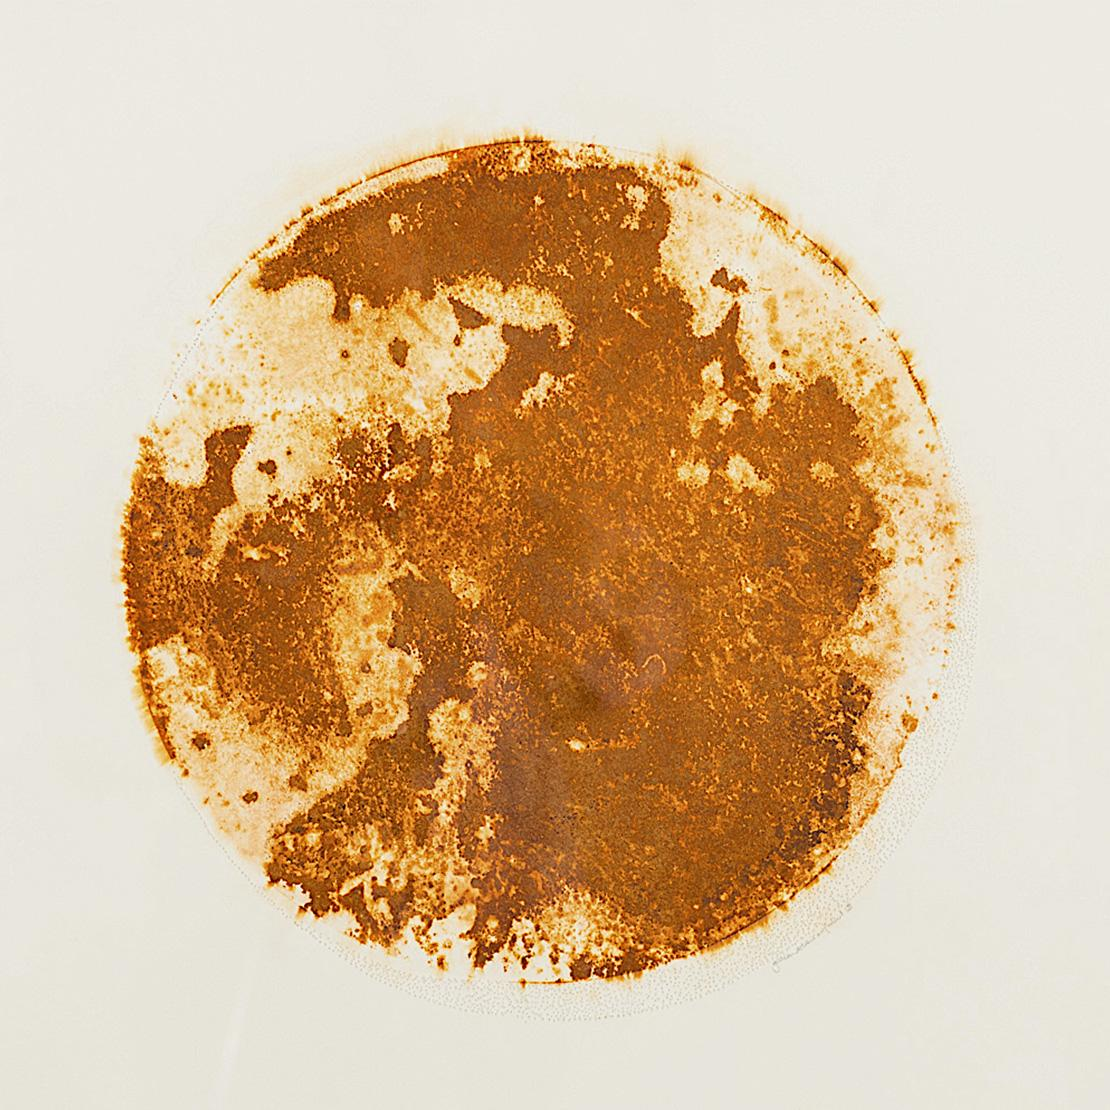 »Rust Print 1 week«, Gillian McFarland, unique print